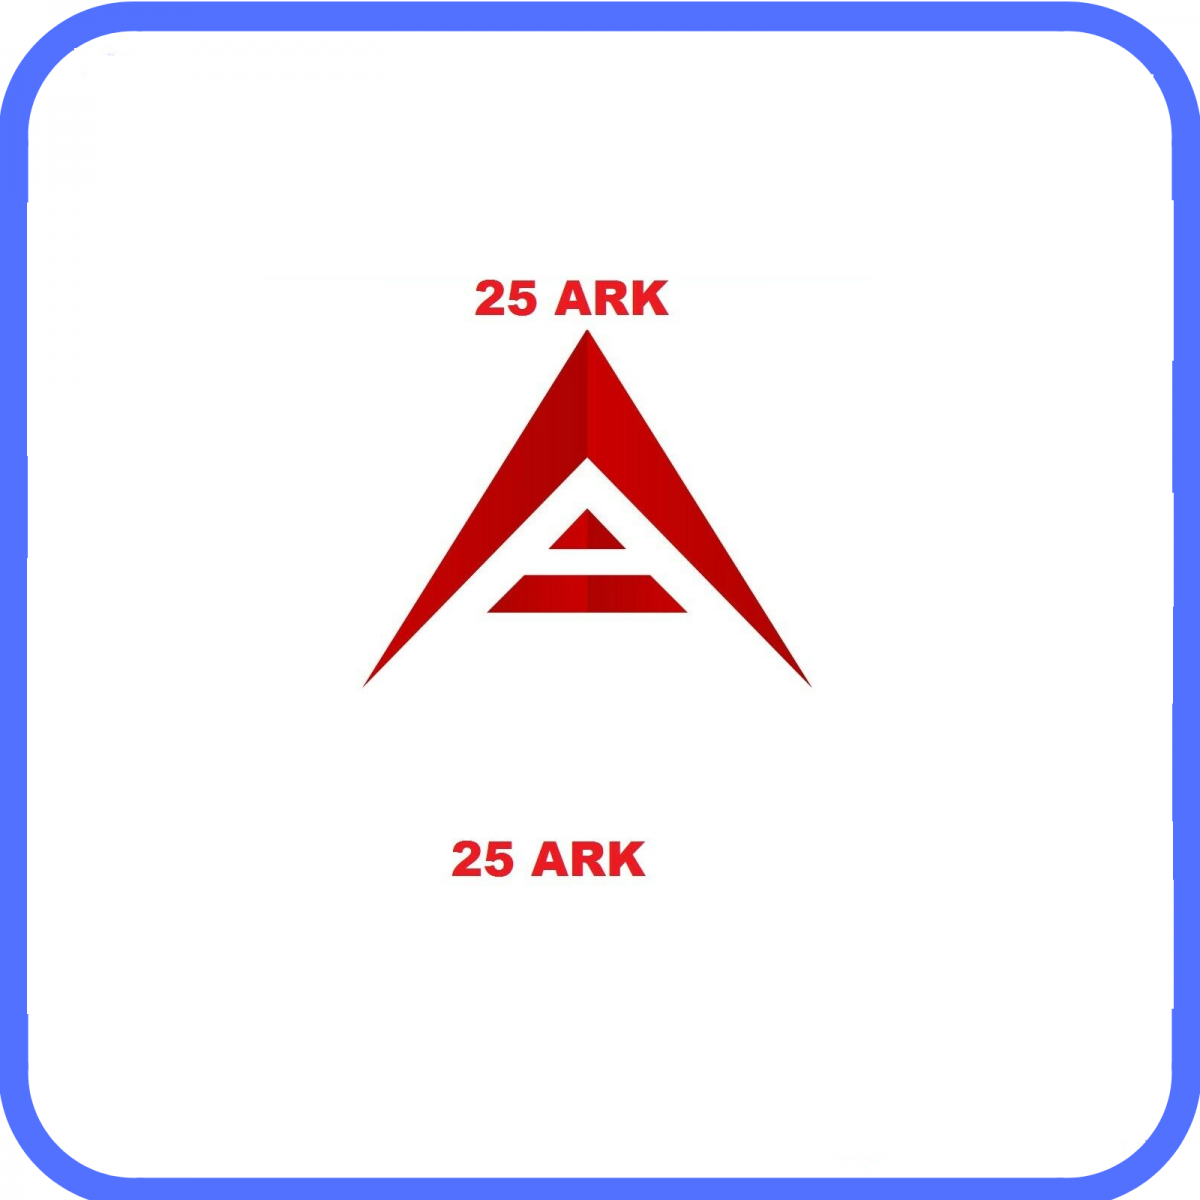 ARK Web Services